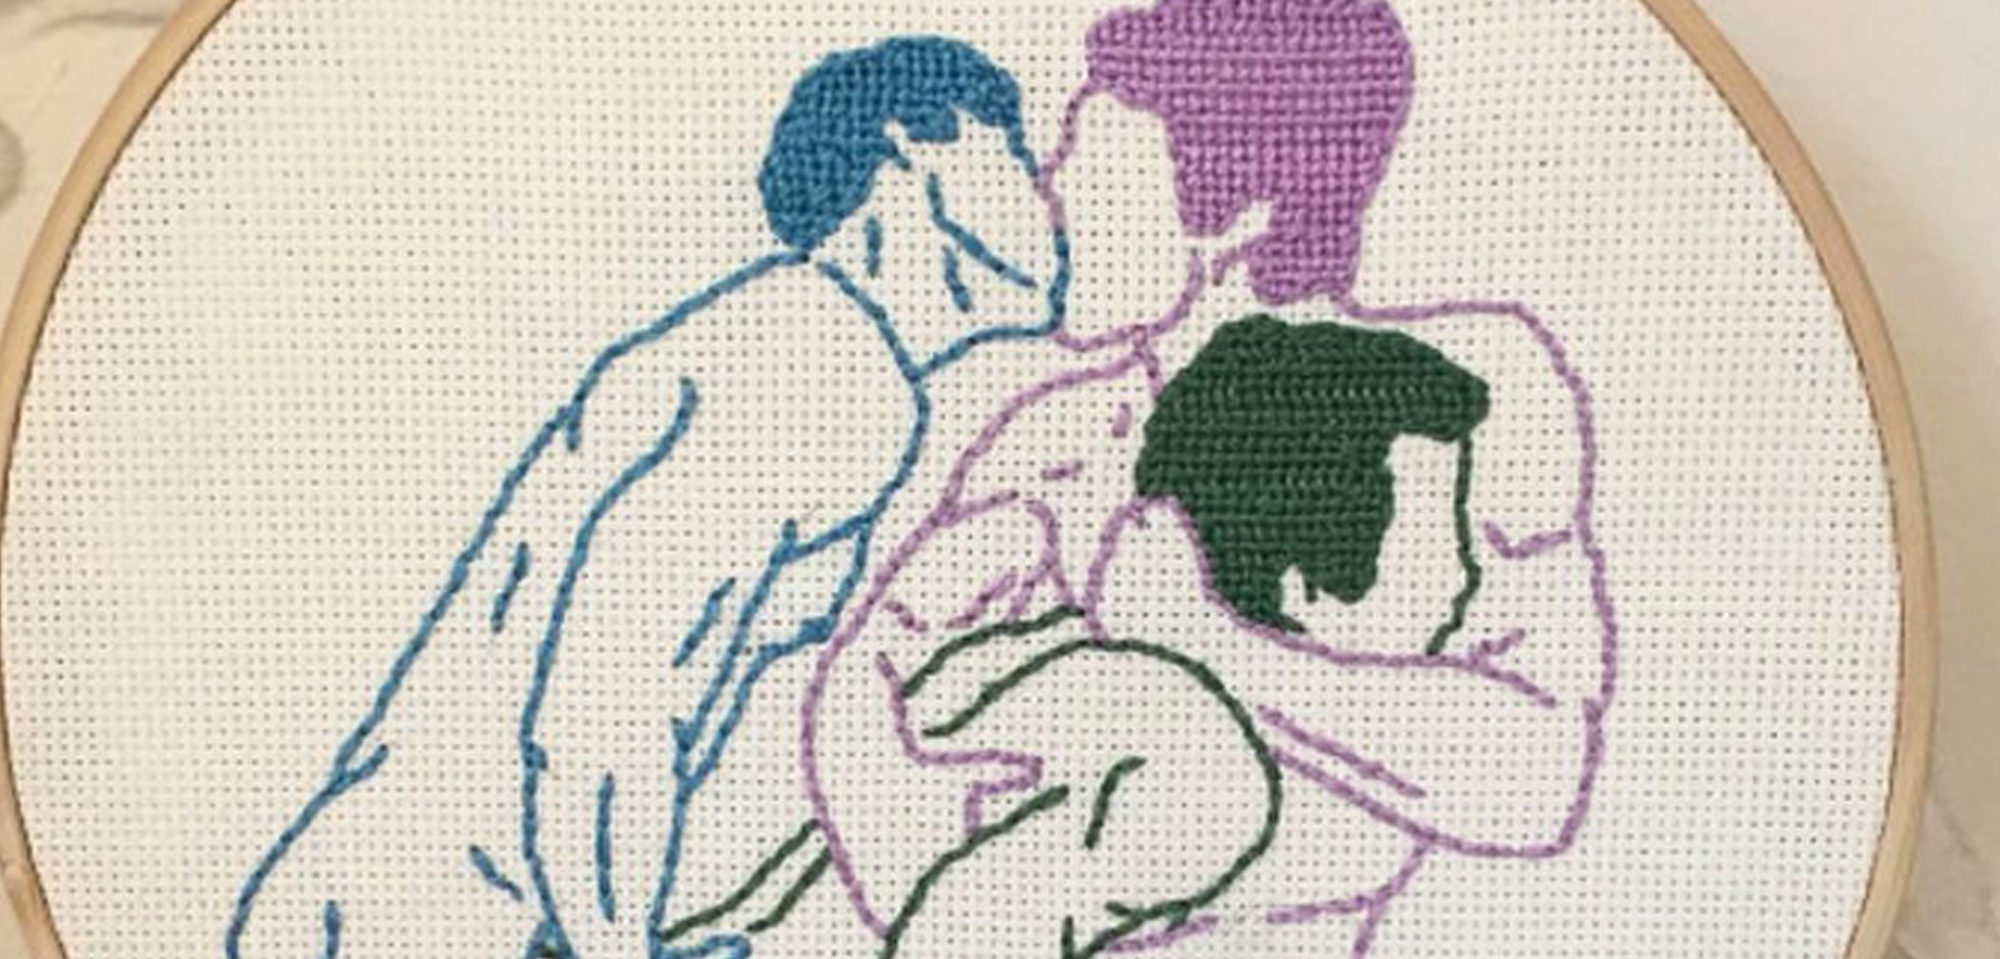 These 10 Gay Needlepoints Are Downright Porntastic (NSFW)